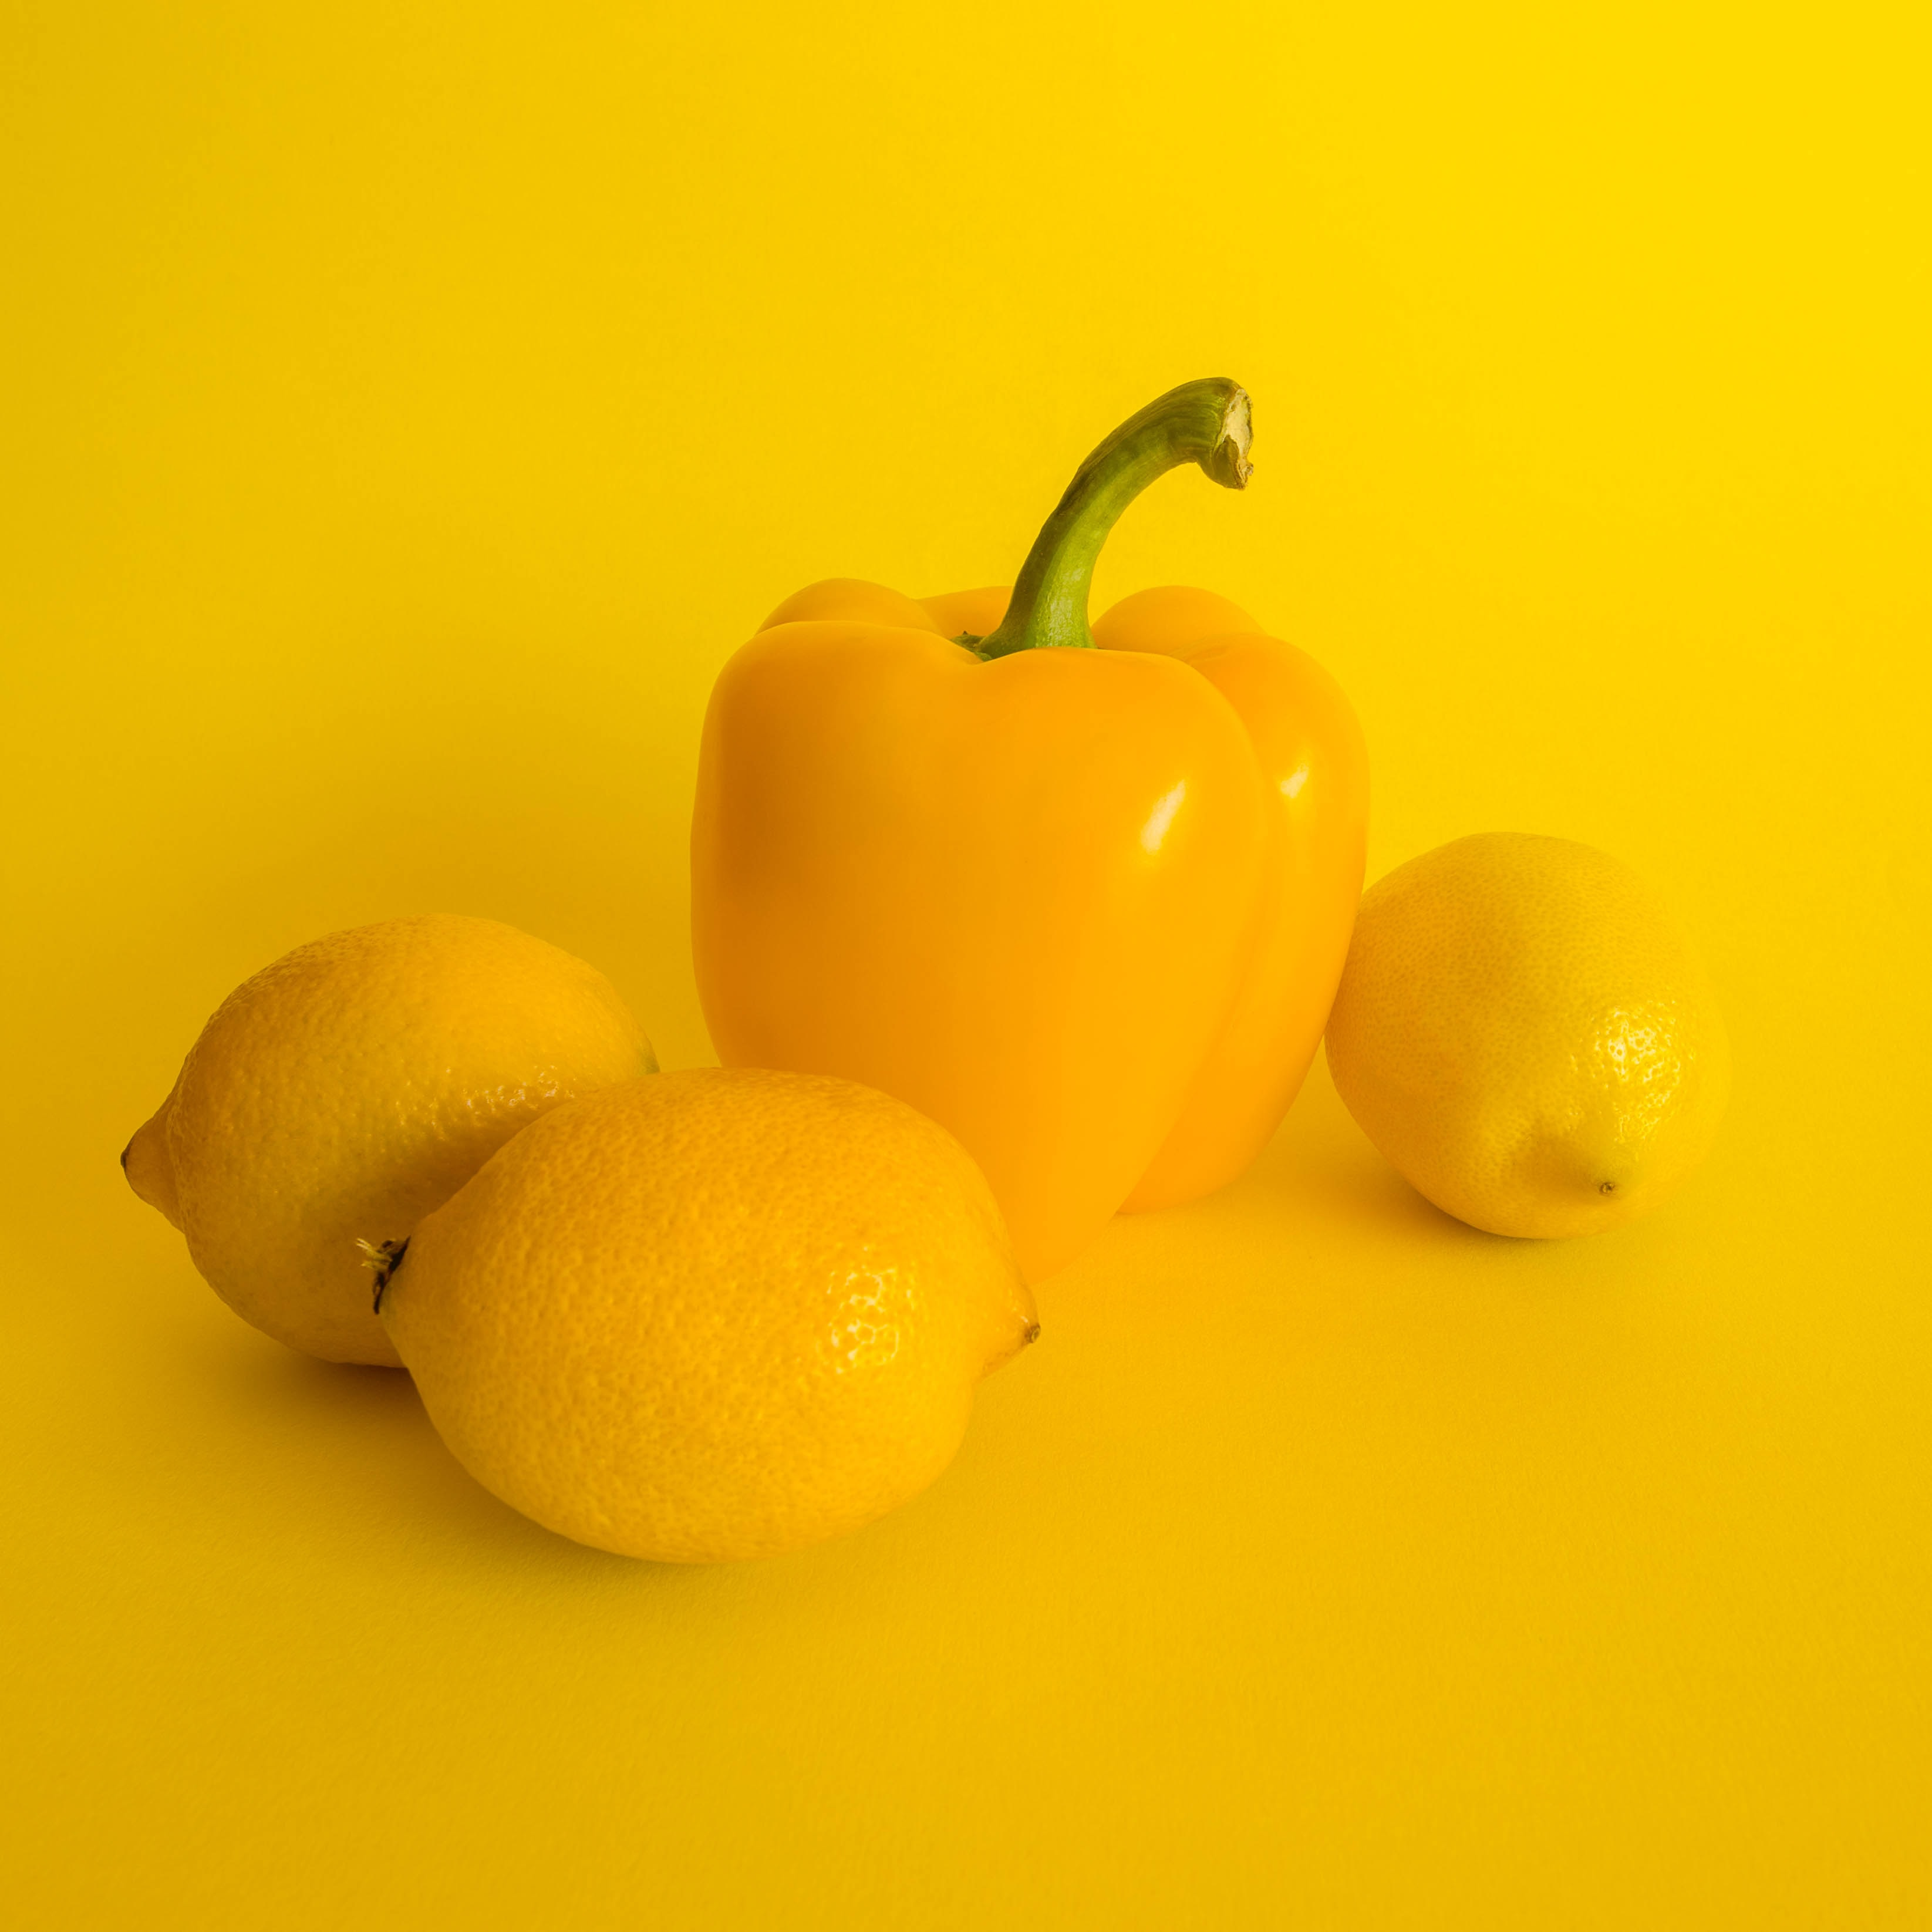 three lemons and yellow bell pepper